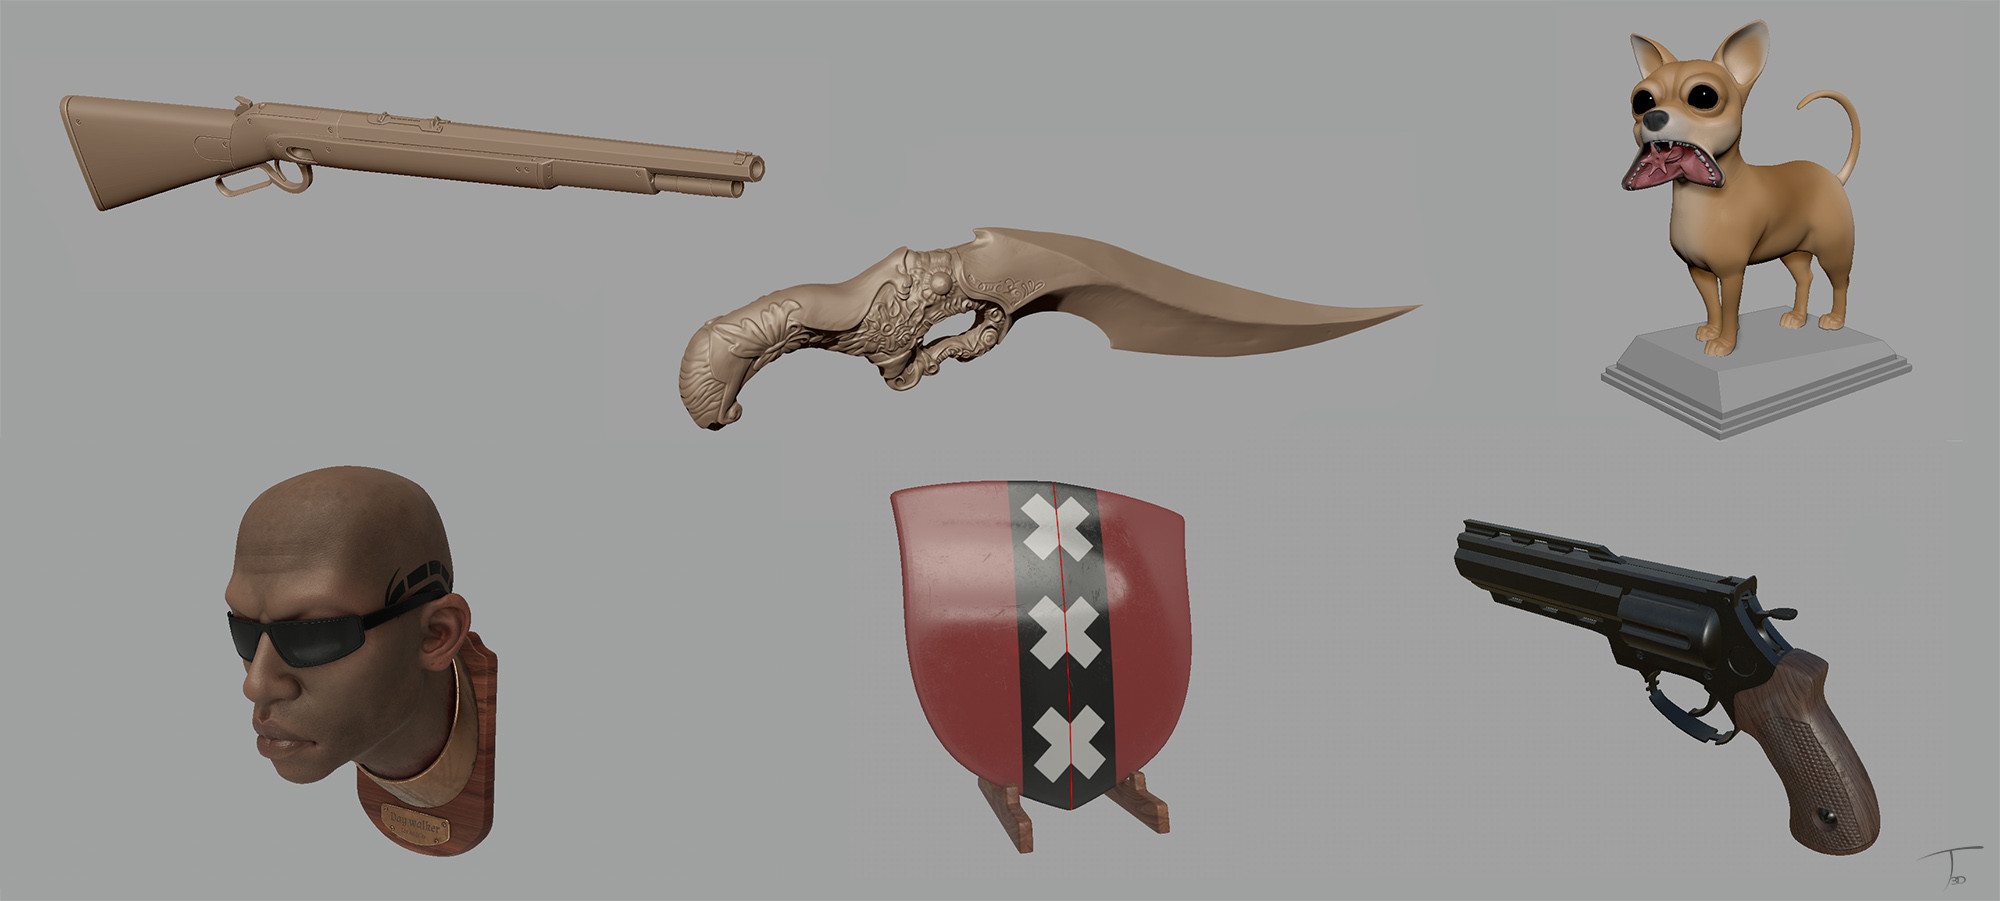 Some of the assets, grabbed from zbrush or substance viewport